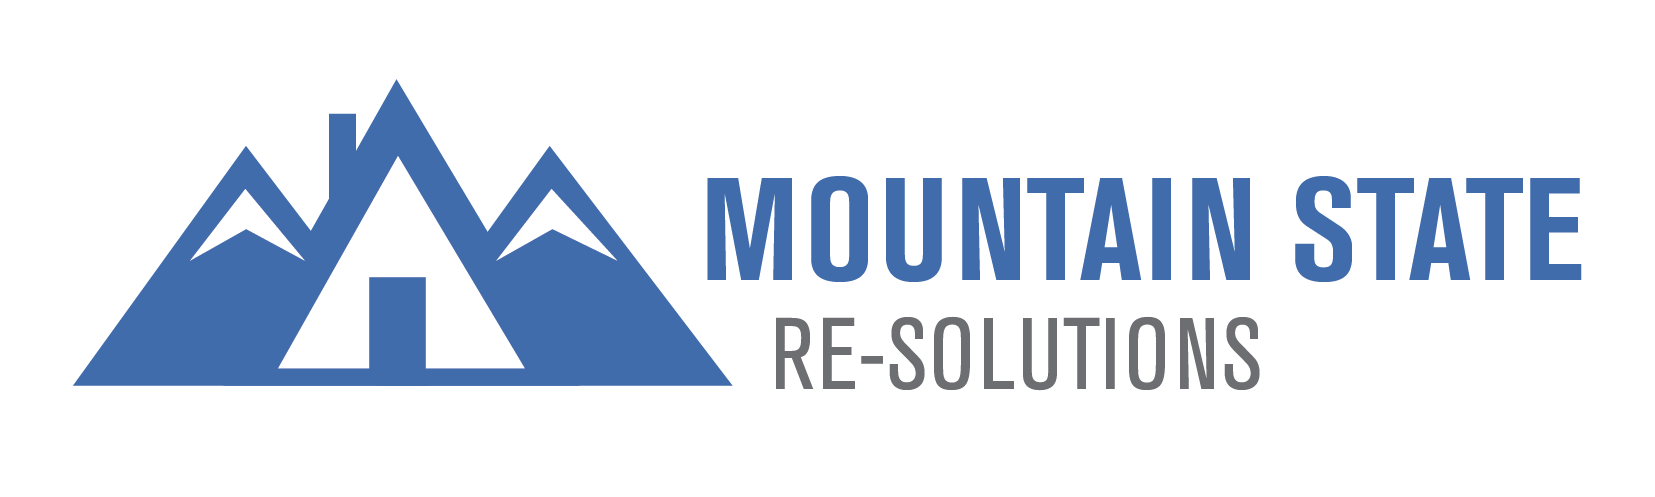 Mountain State RE-Solutions logo